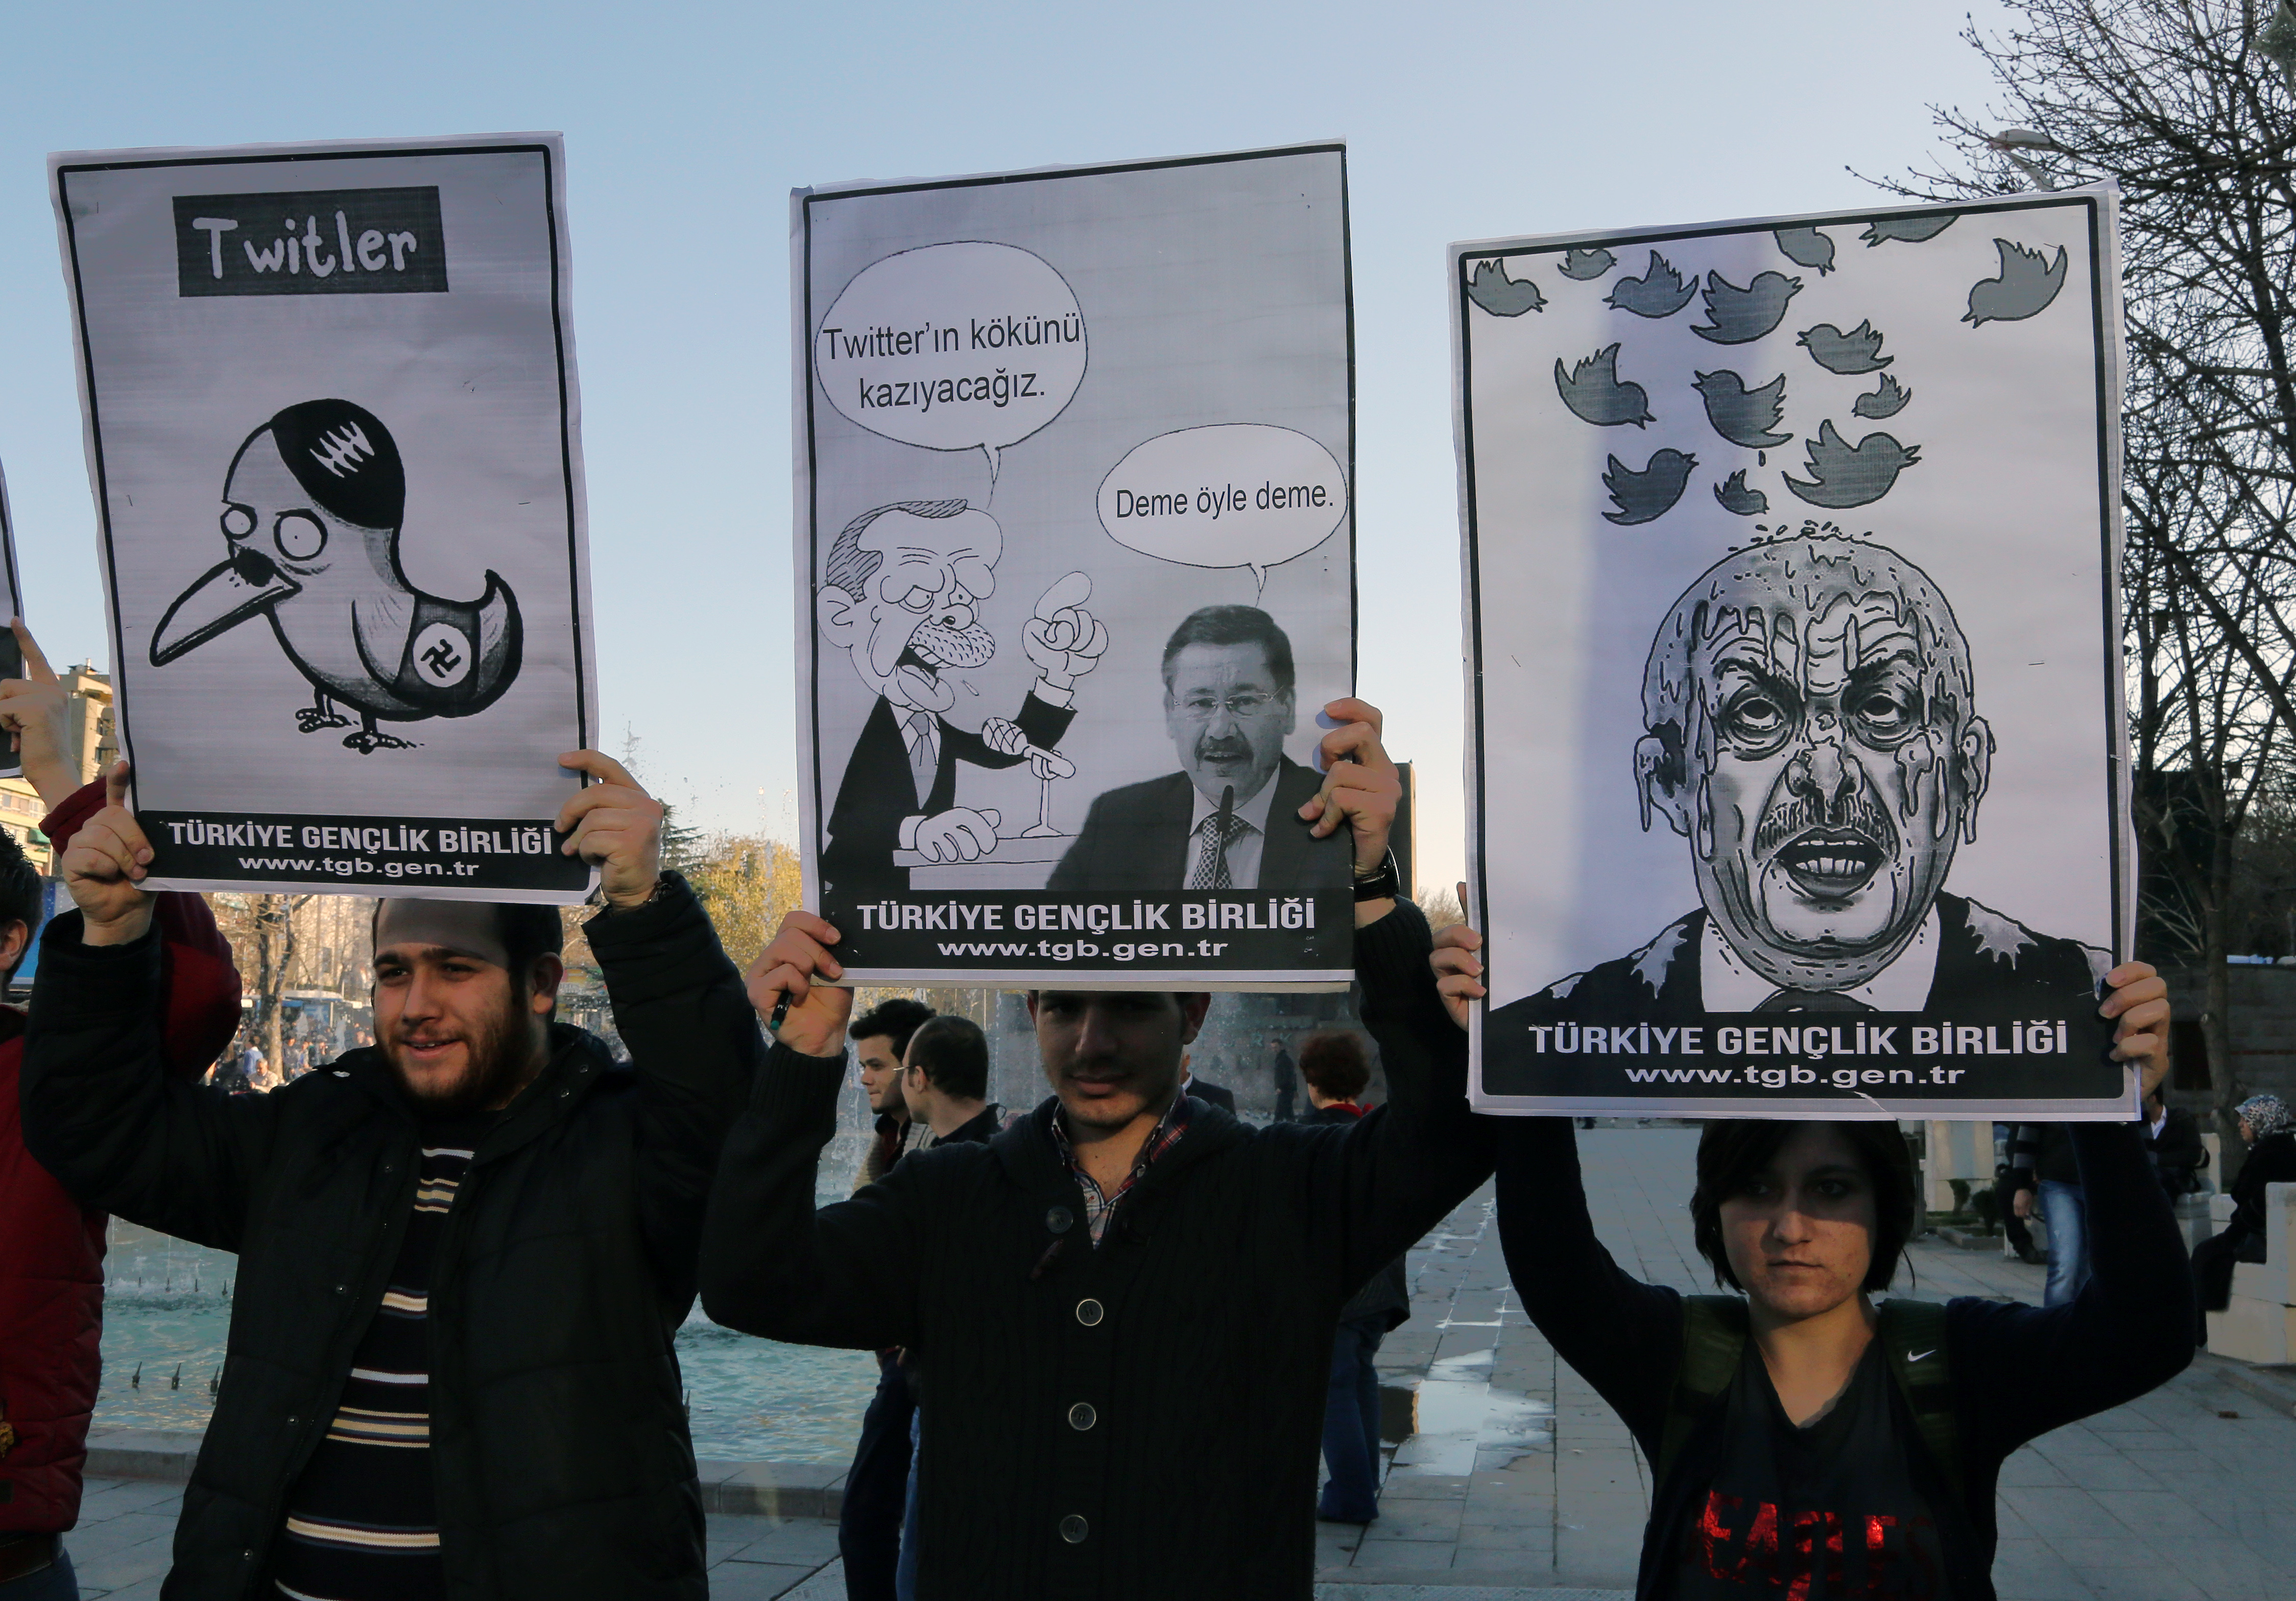 Members of the Turkish Youth Union hold cartoons depicting Turkey's Prime Minister Recep Tayyip Erdogan during a protest against a ban on Twitter on March 21, 2014, in Ankara